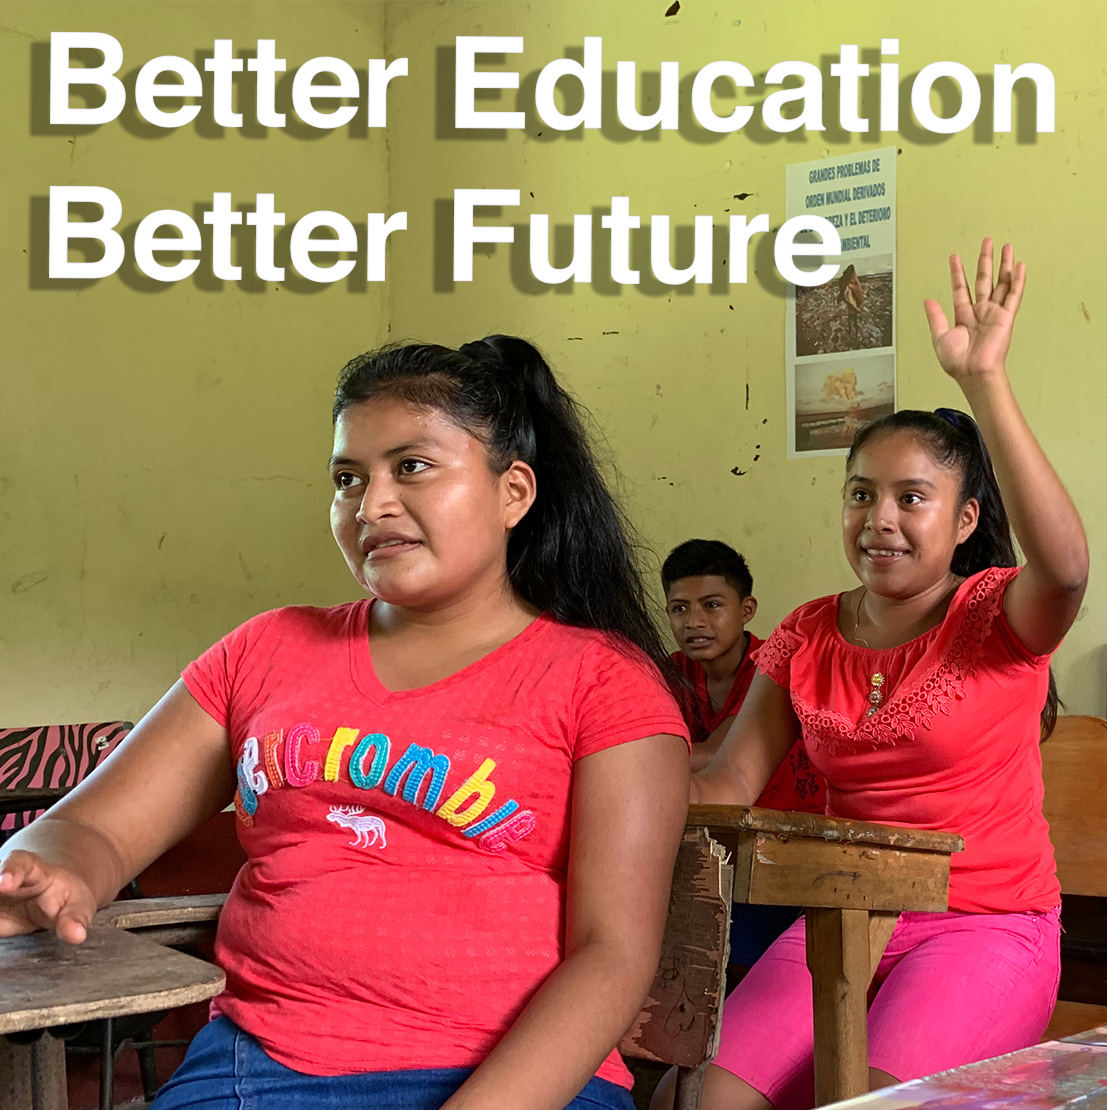 Better Education Better Future